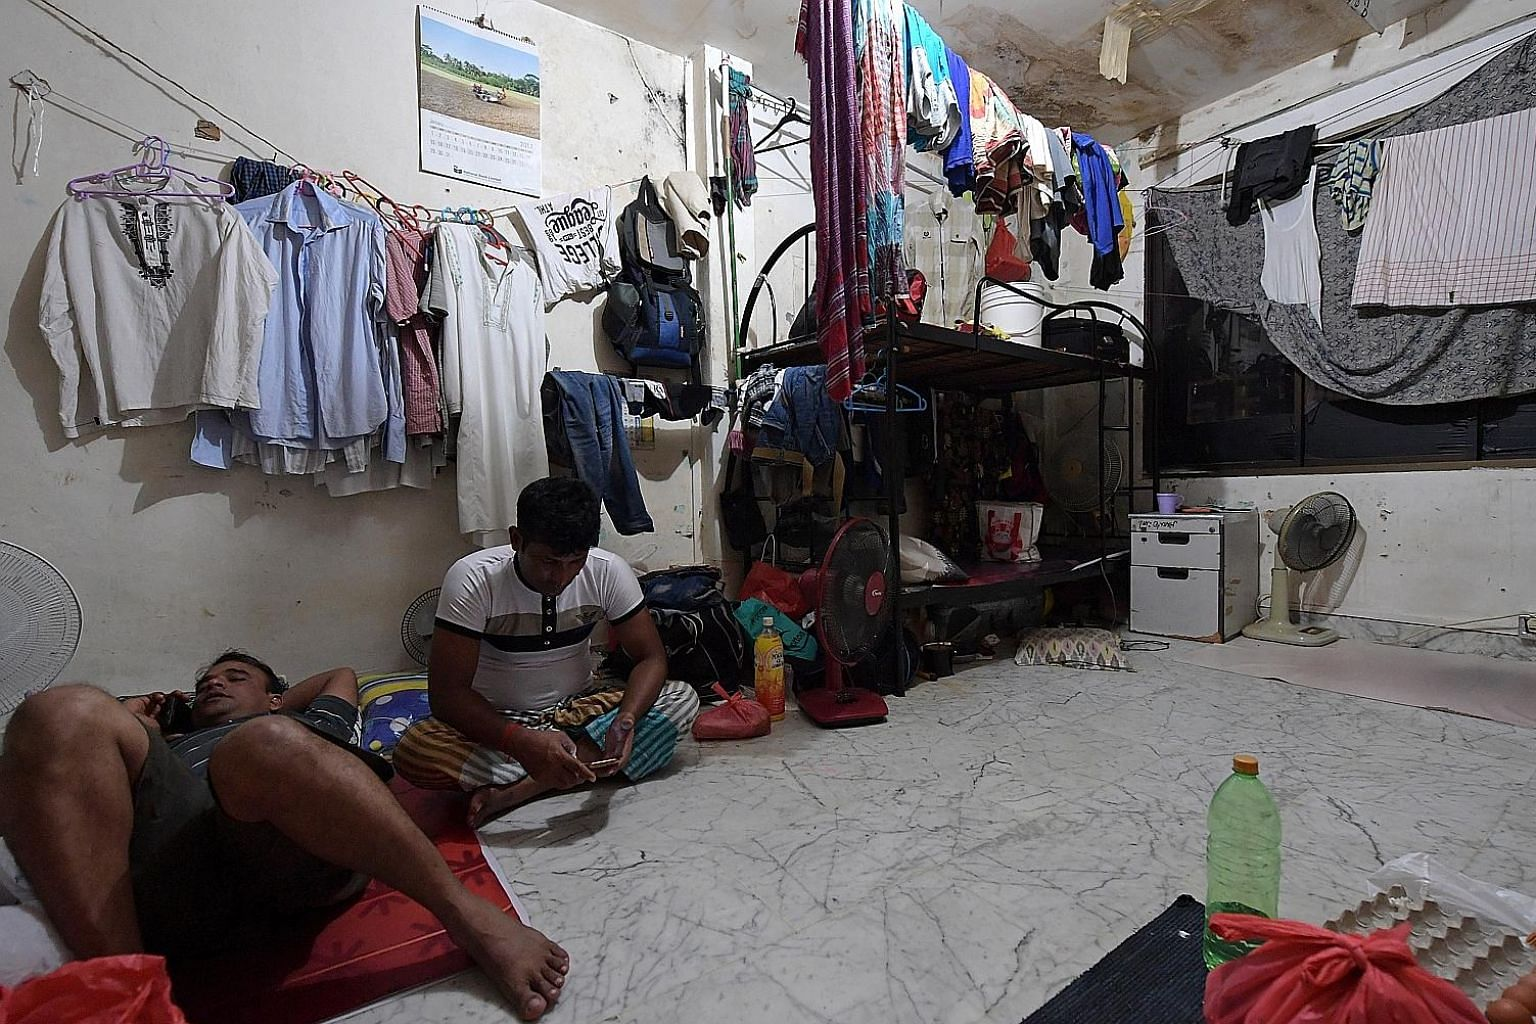 According to a study done in collaboration with non-profit organisation HealthServe, eight out of 10 migrant workers under stress in Singapore are from Bangladesh. In contrast, one out of 10 from China and India say they are under similar stress.